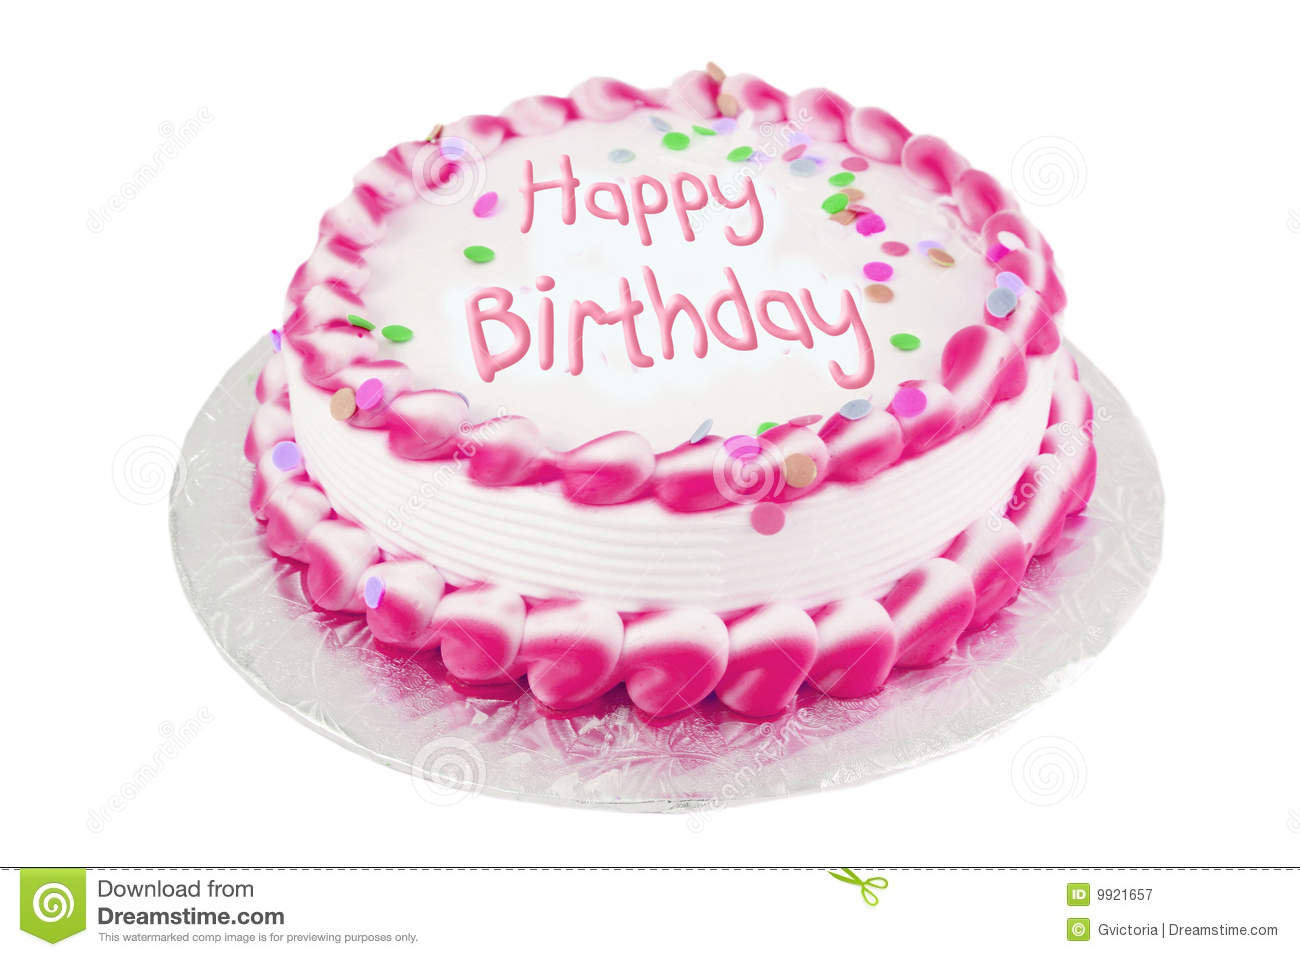 Birthday Cake Frosted Happy Pink